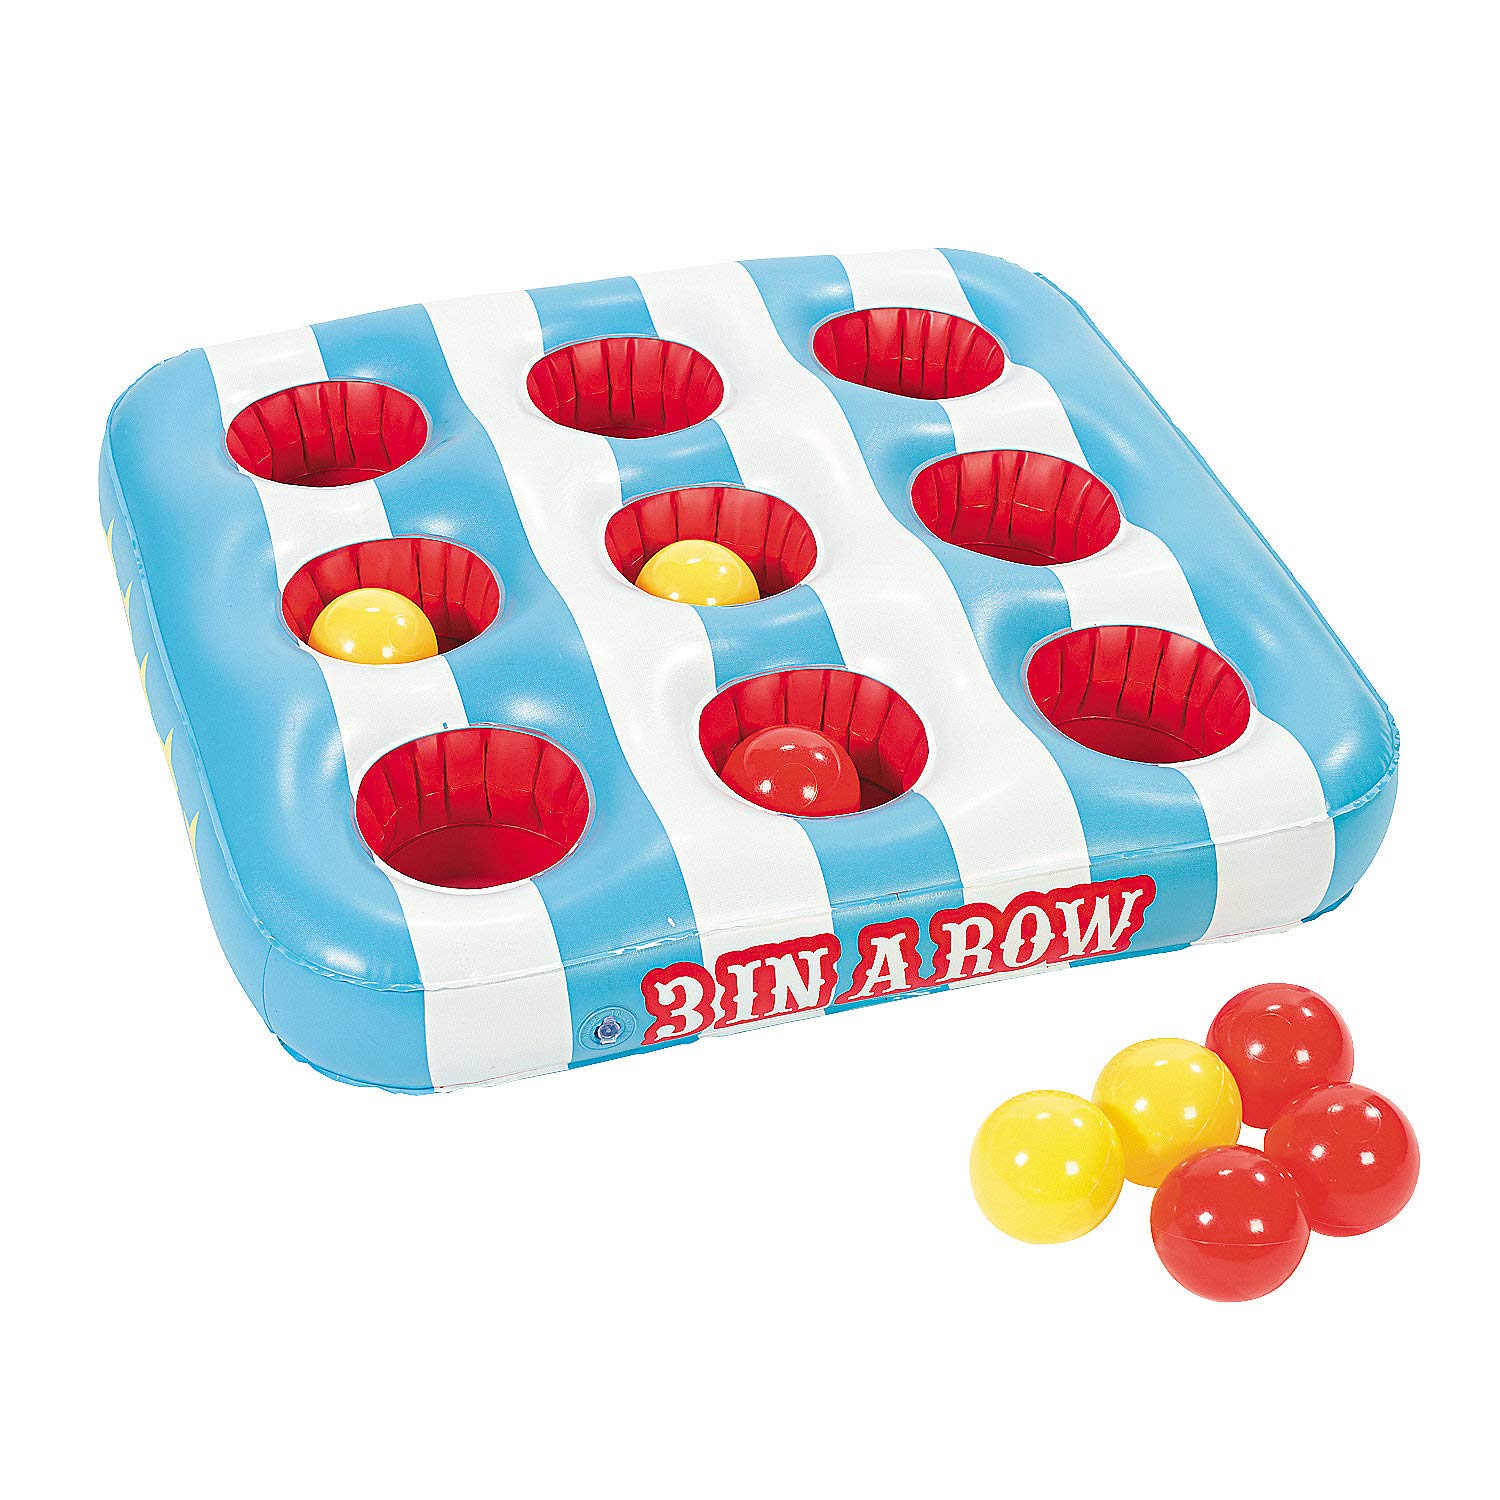 Fun Express Carnival 3 in A Row Floating Pool Game Includes 8 Balls by Fun Express